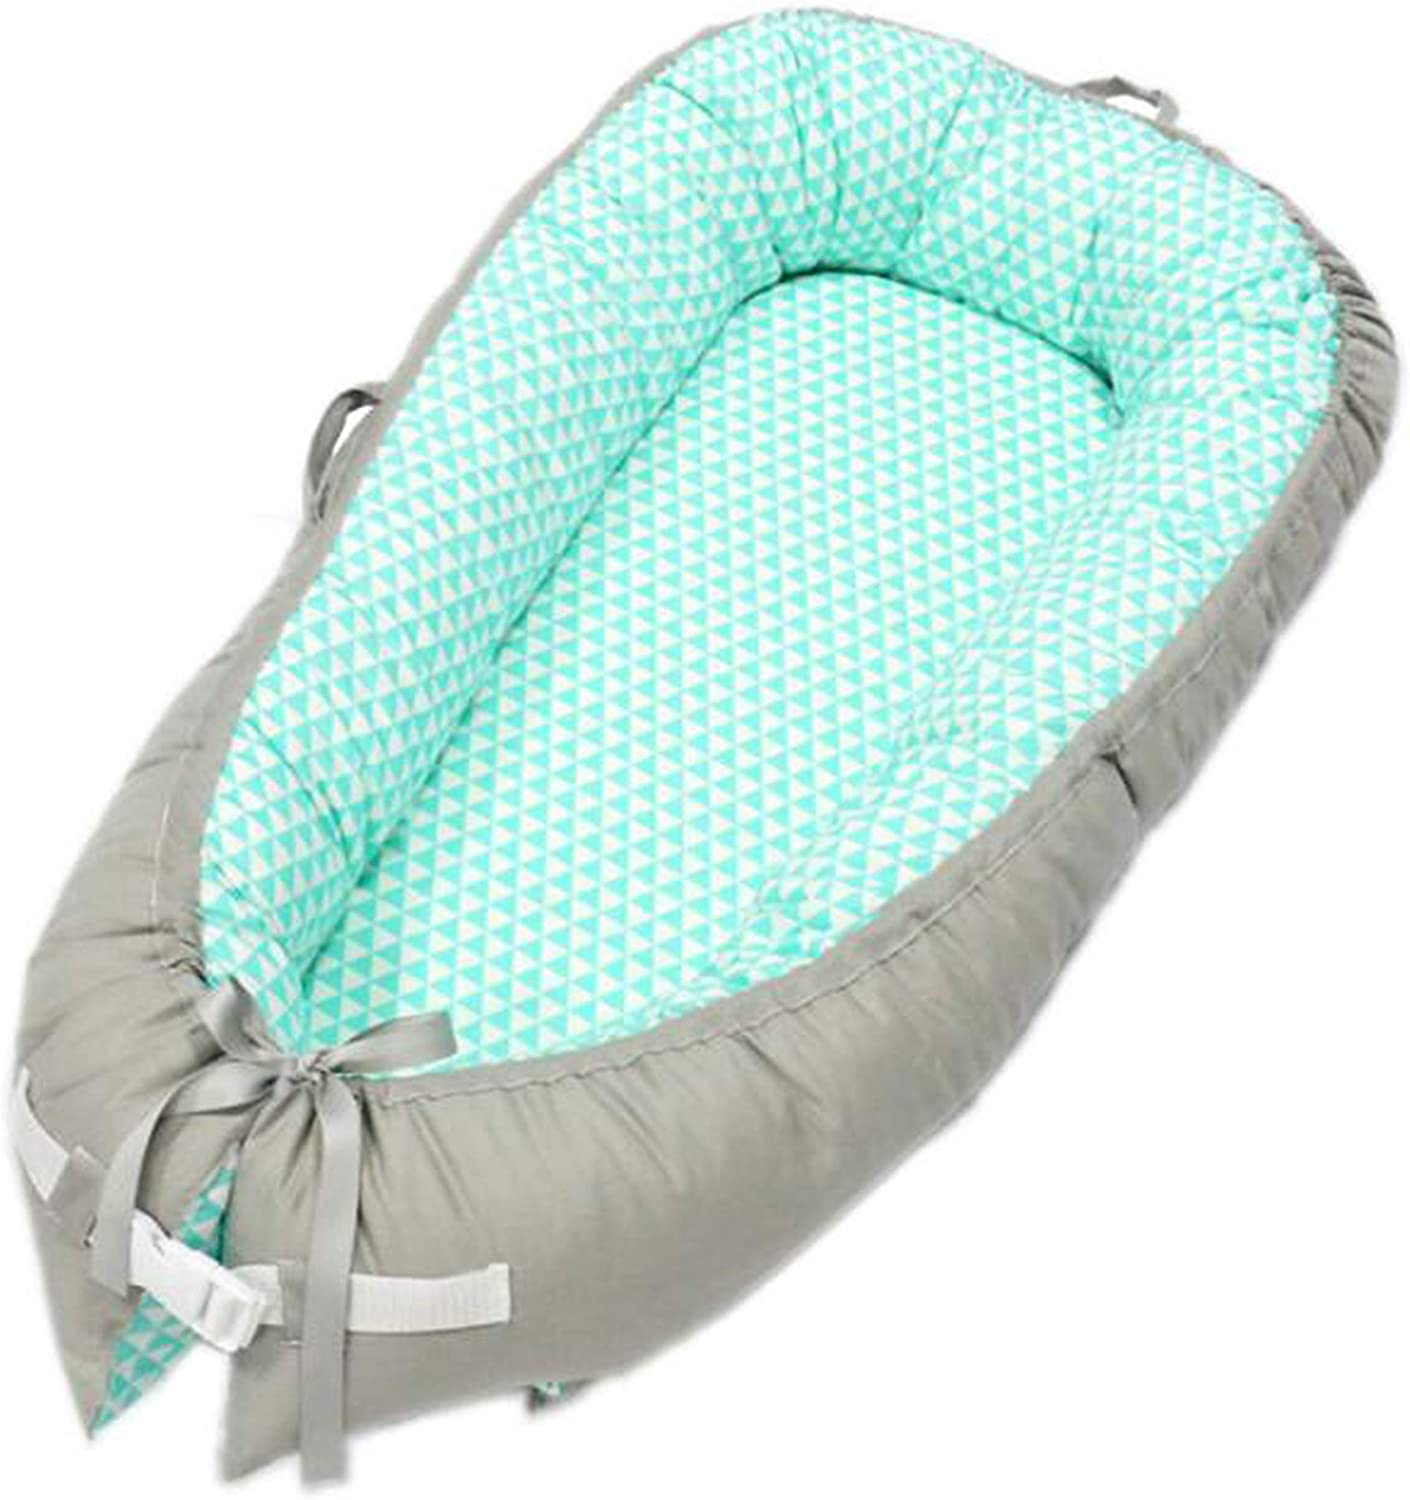 Cotton Portable Washable Baby Bed Multiple Choices Multicolor Optional,D Newborn Lounger